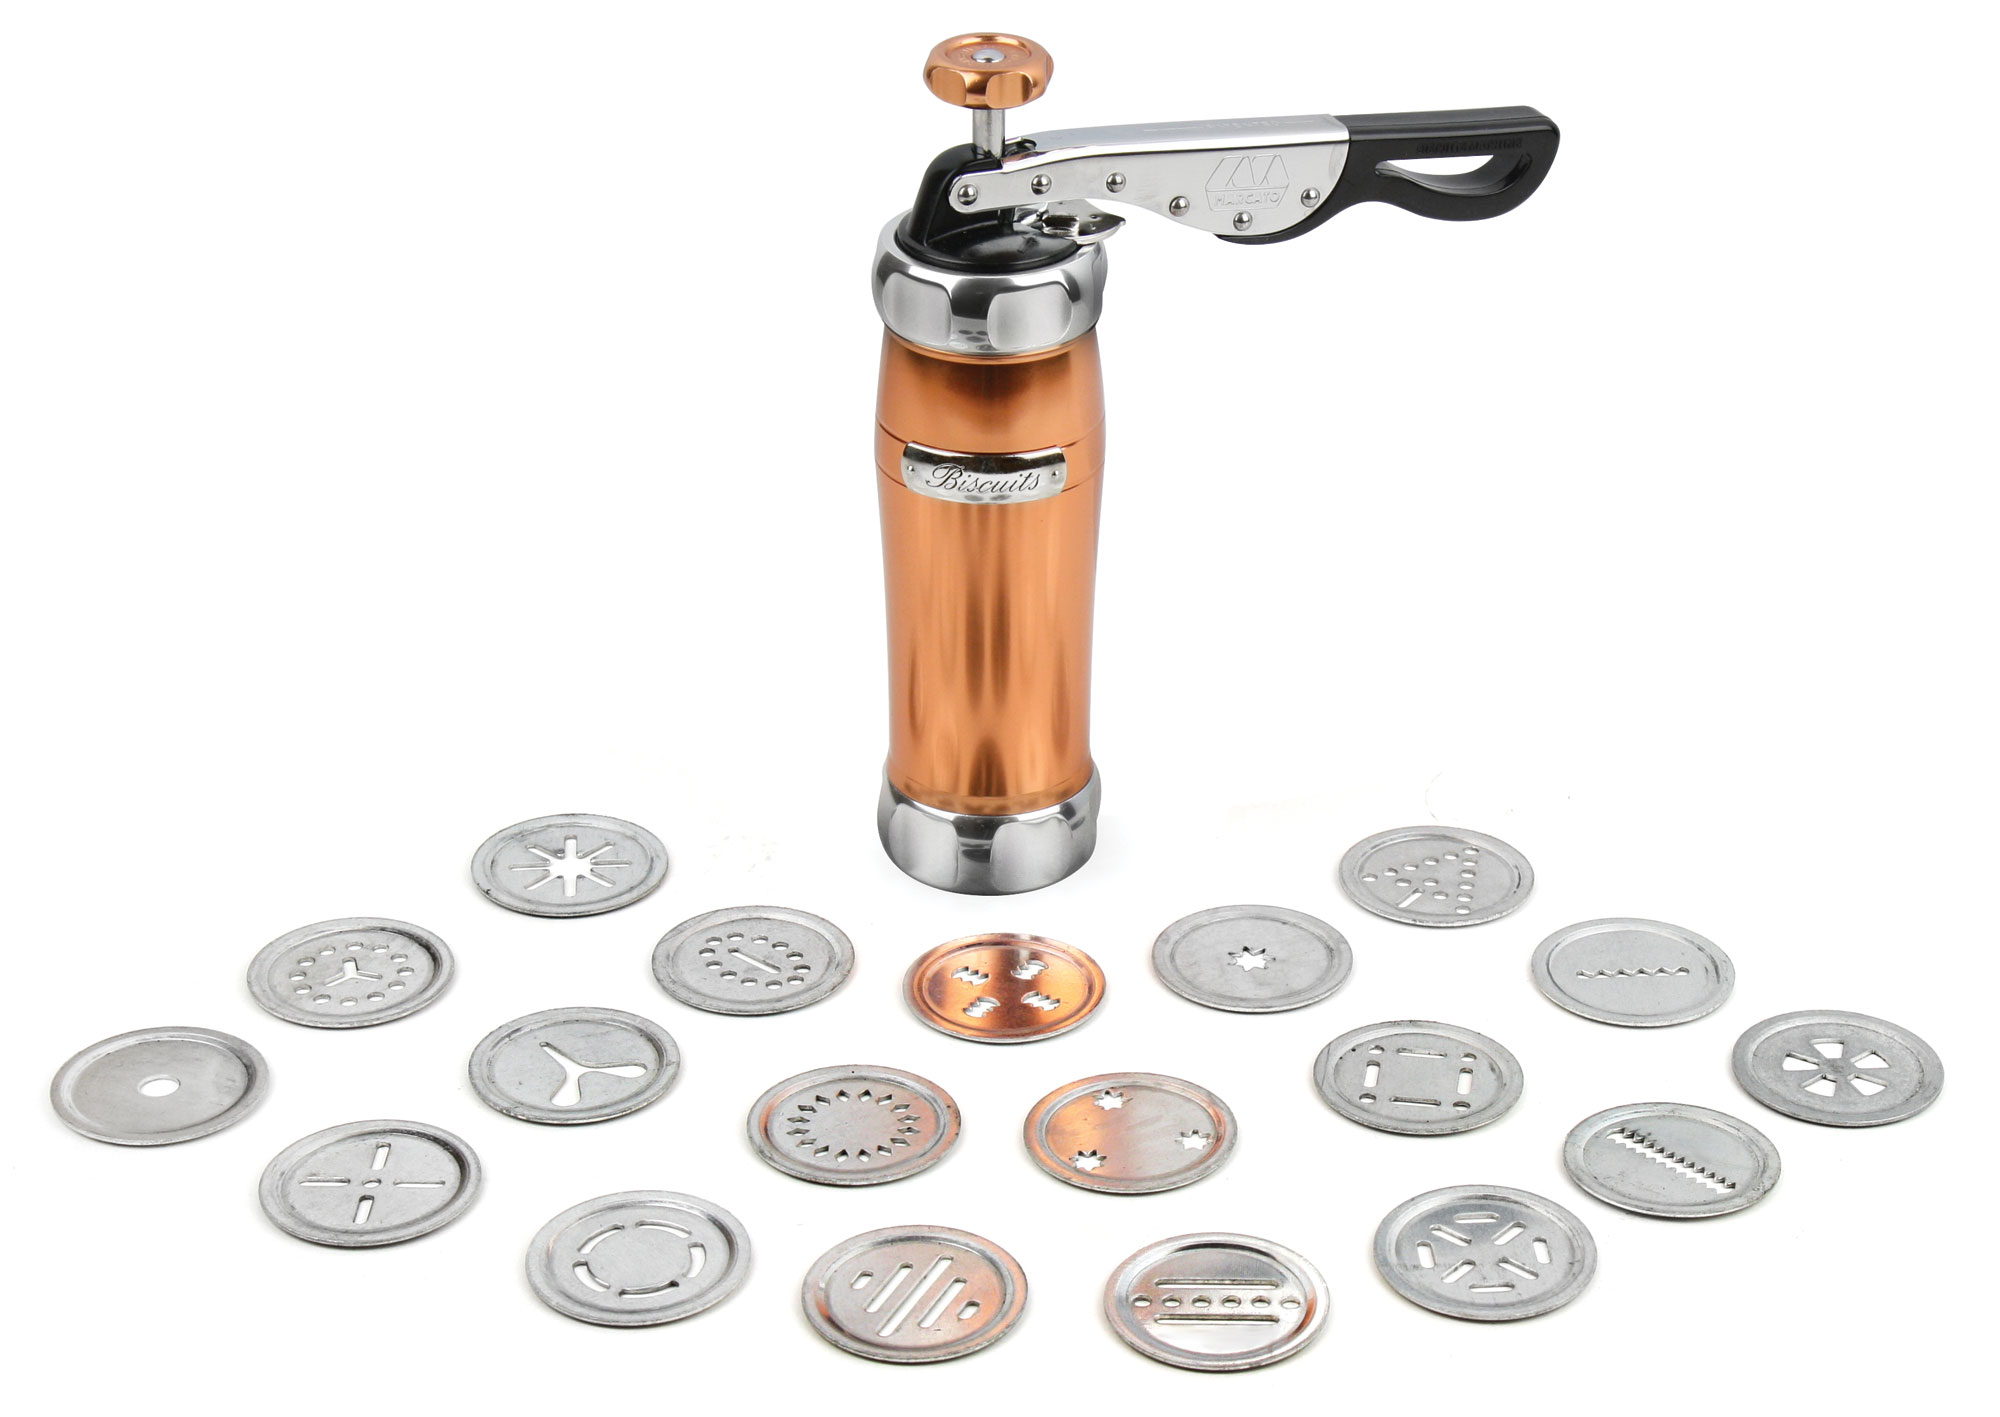 Marcato Biscuit Cookie Press Copper Cutlery And More